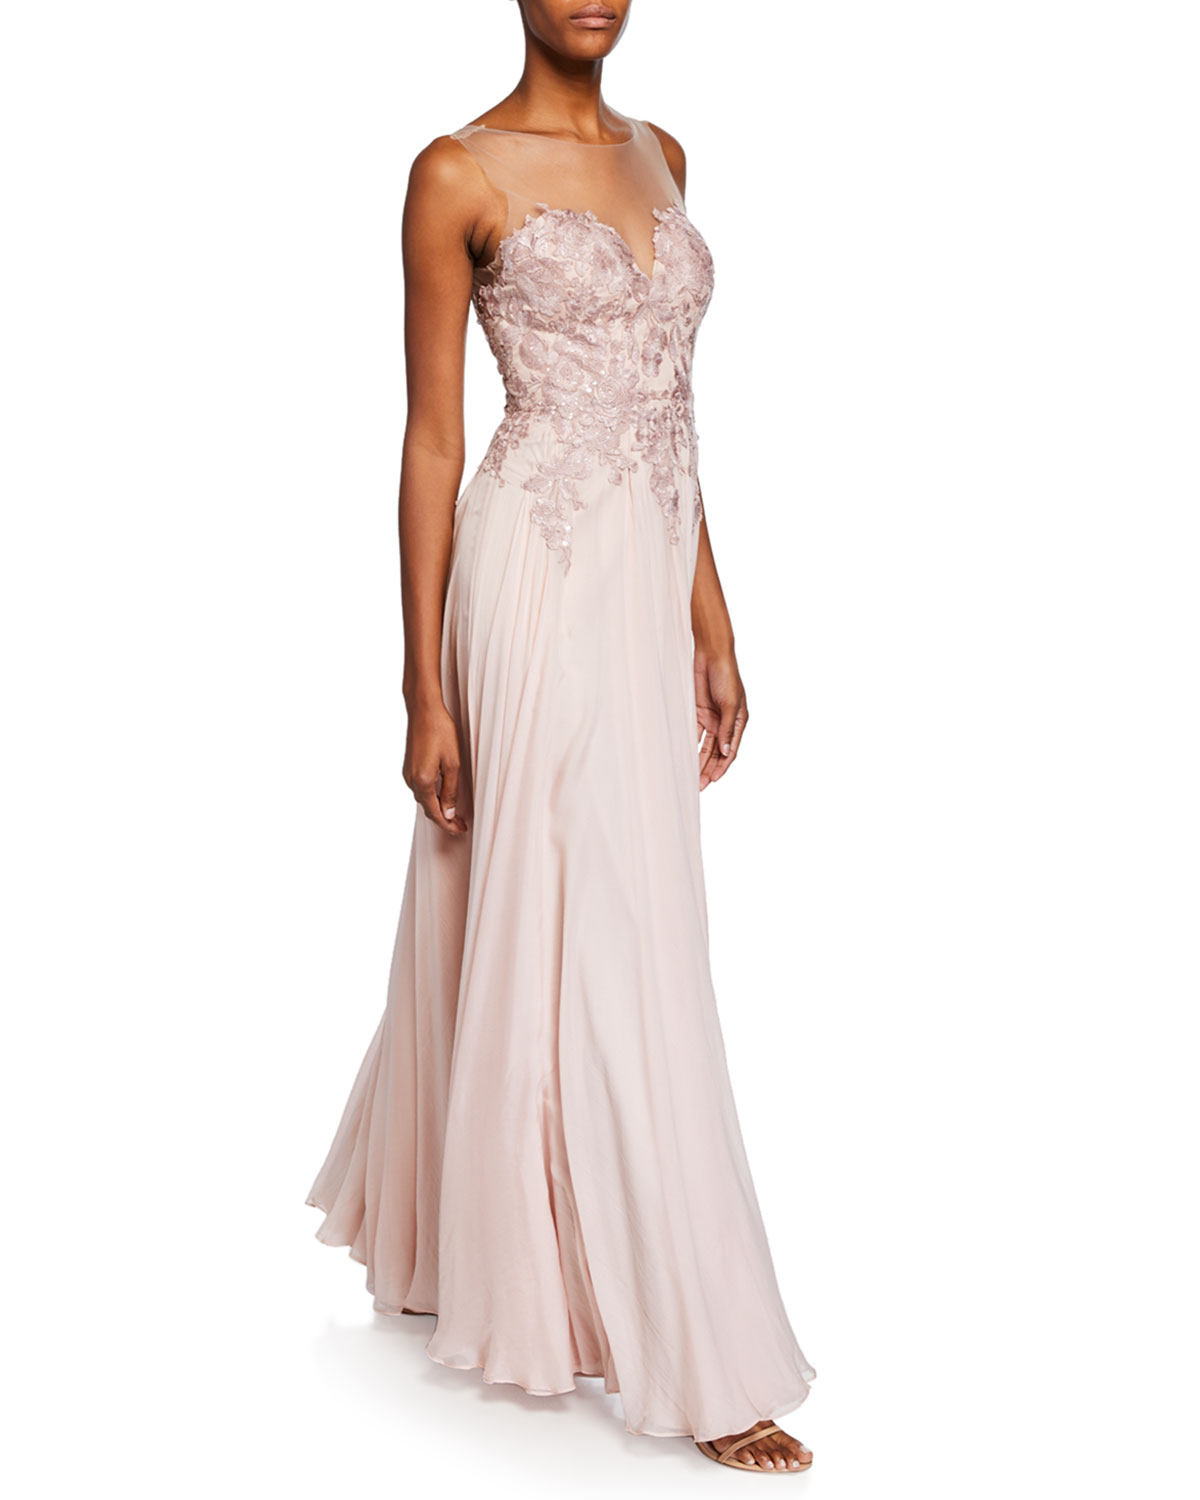 Catherine Deane Misha Light Pink Sweetheart Illusion Sleeveless Silk Chiffon Gown w/ Applique Bodice